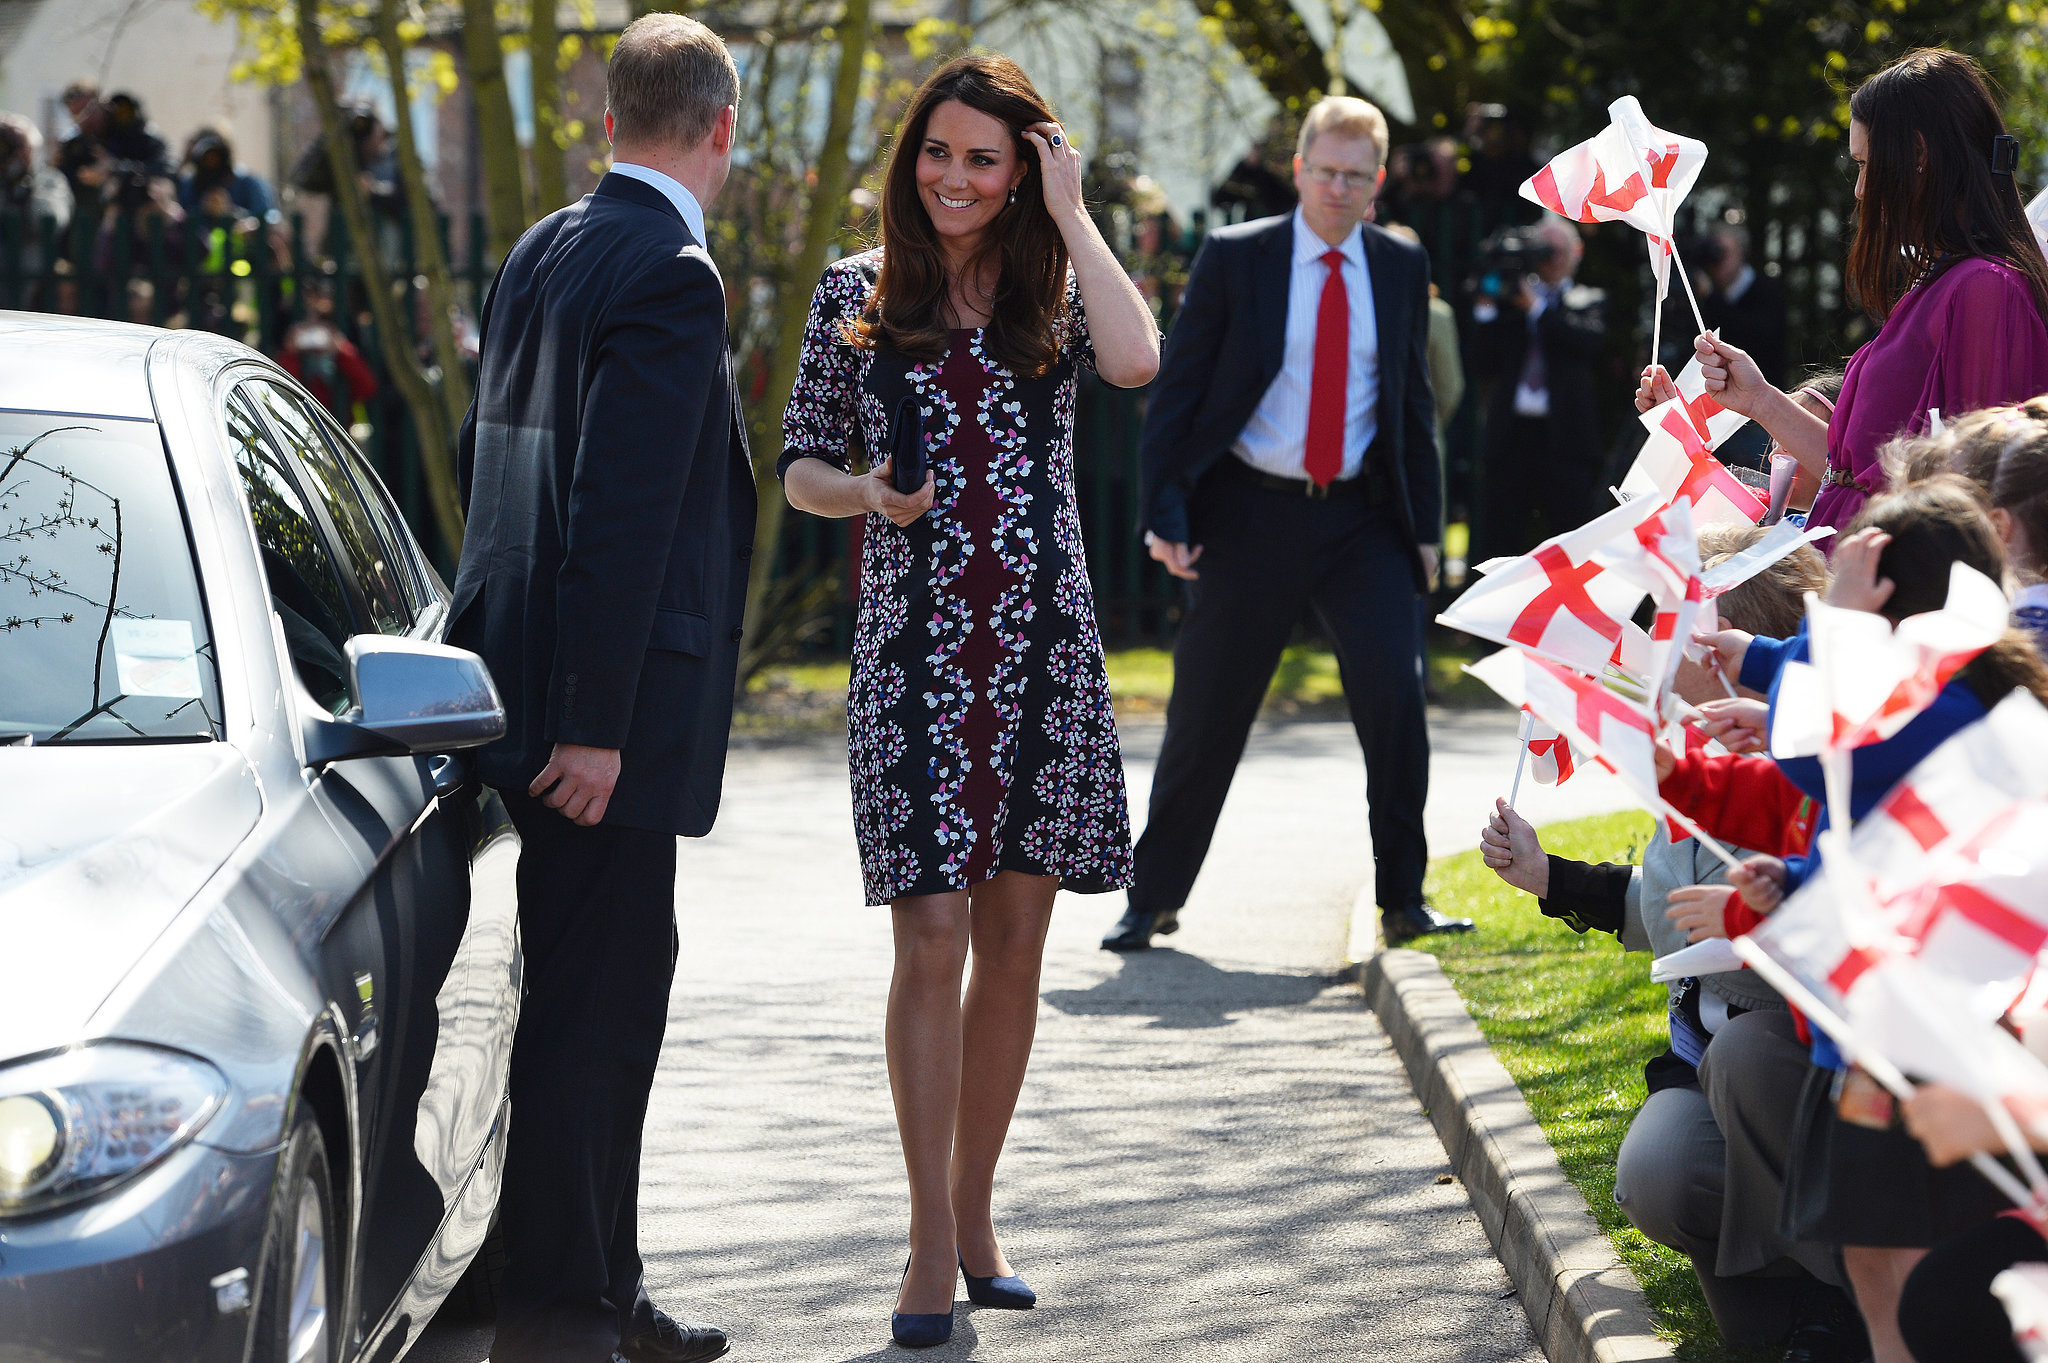 In April 2013, Kate was all smiles when she dropped by the Willows Primary School in Manchester, England, in a patterned Erdem dress.